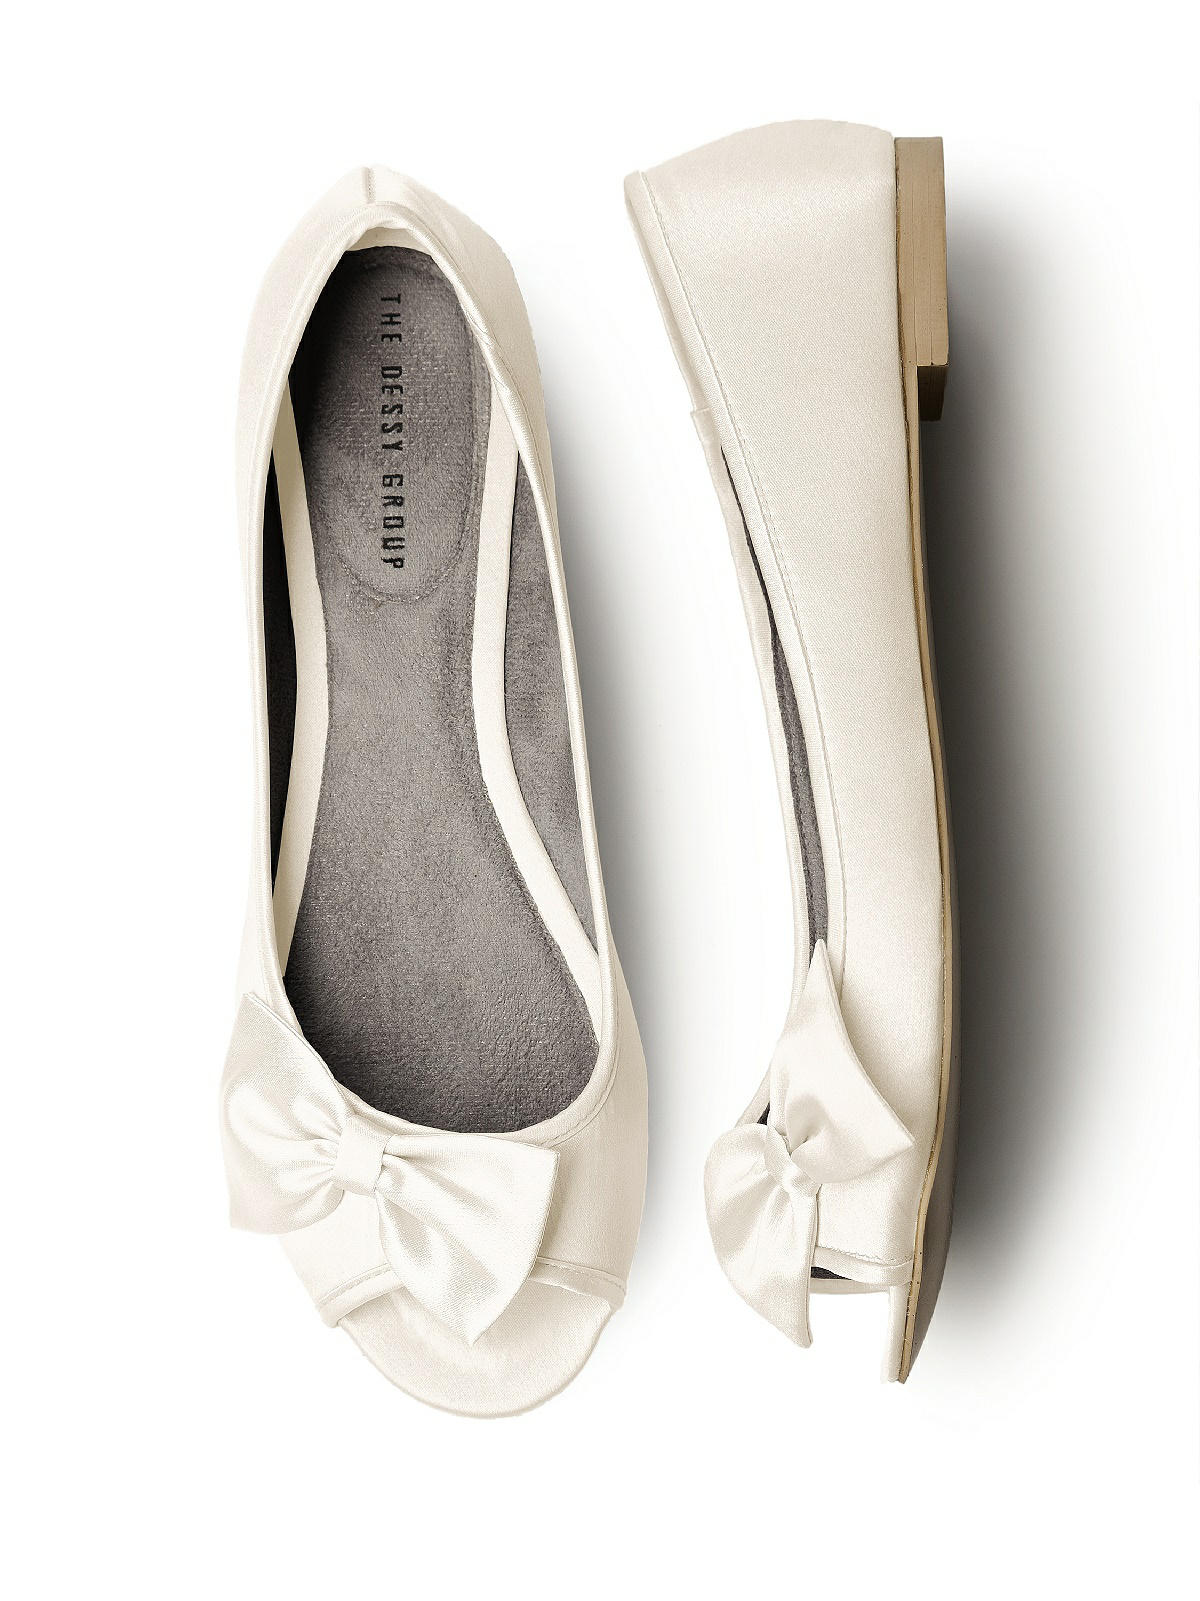 Satin Peep Toe Bridal Ballet Flats The Dessy Group